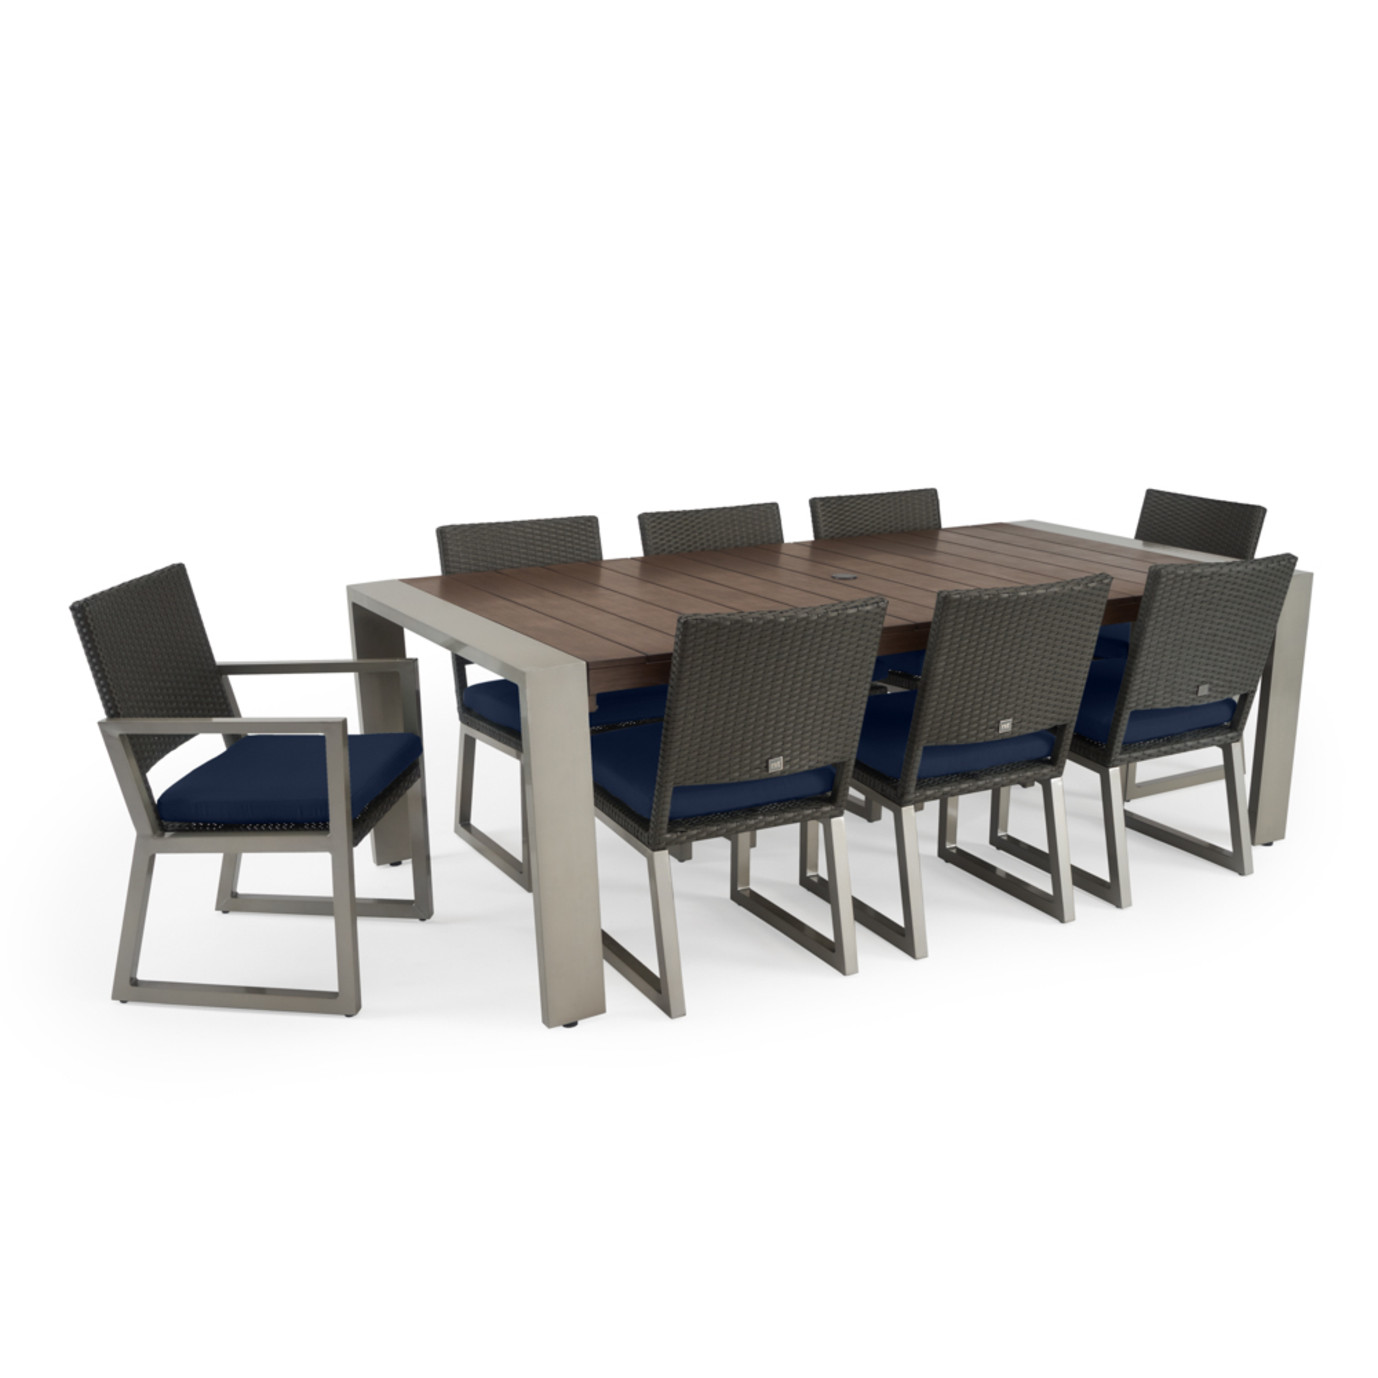 Milo™ Espresso 9 Piece Dining Set - Navy Blue